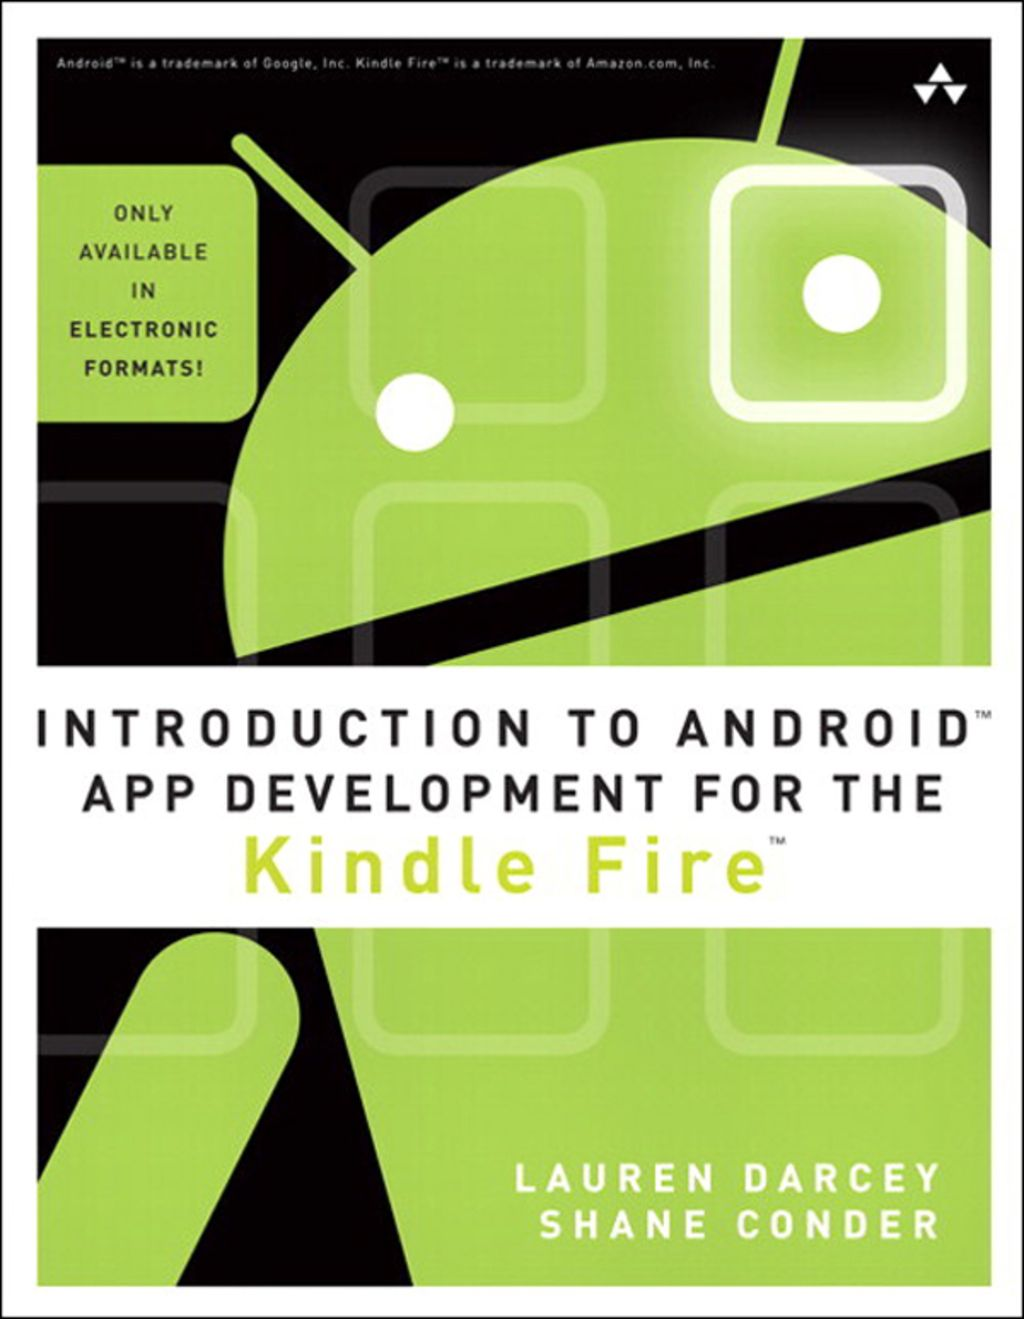 Introduction to Android App Development for the Kindle